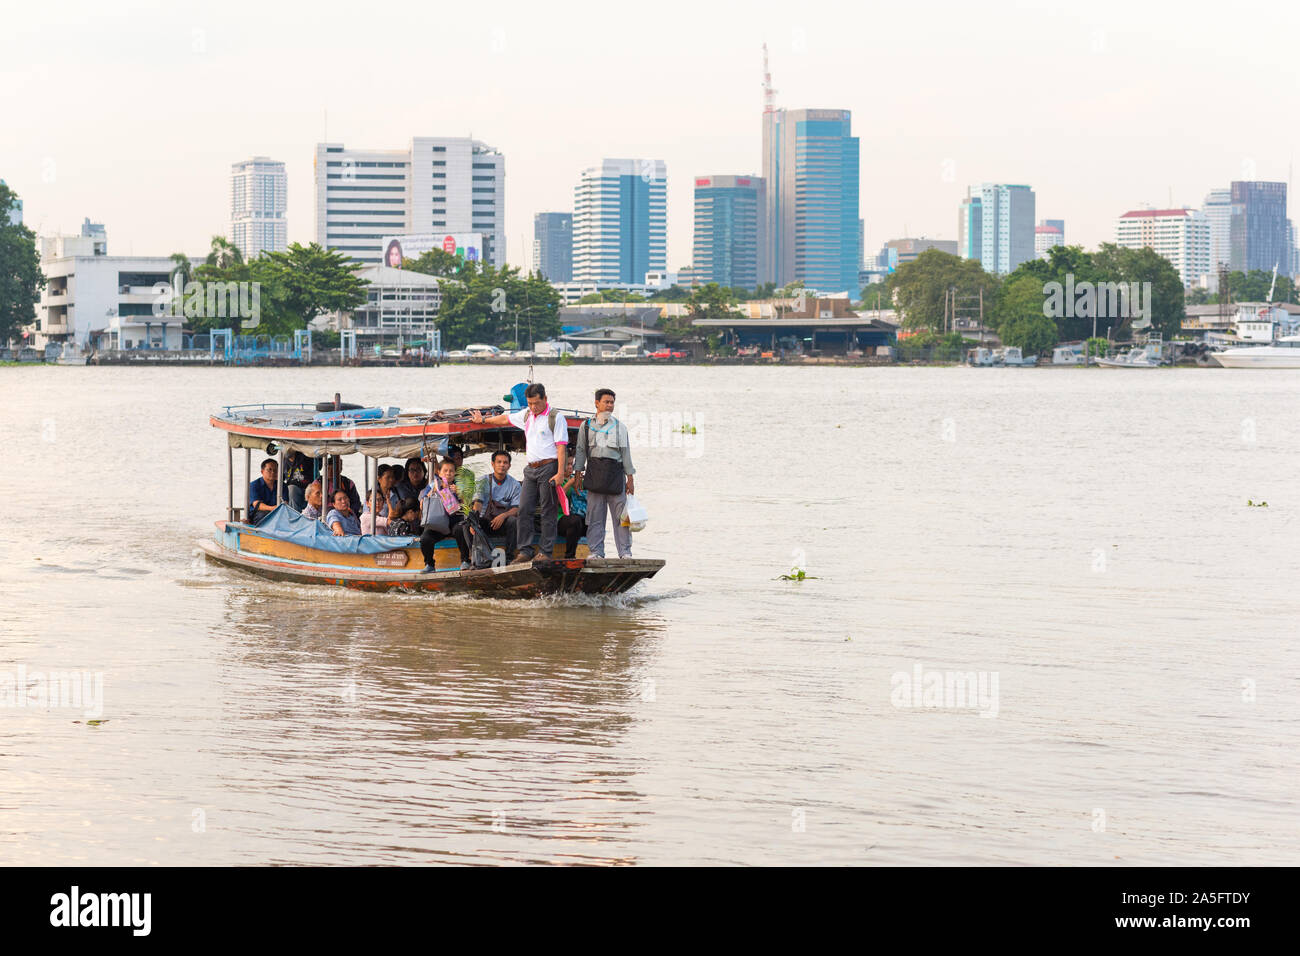 Bangkok, Thailand - September 25, 2018: commuters cross the Chao Phraya River on the ferry following from Khlong Toei to Bang Krachao. Stock Photo